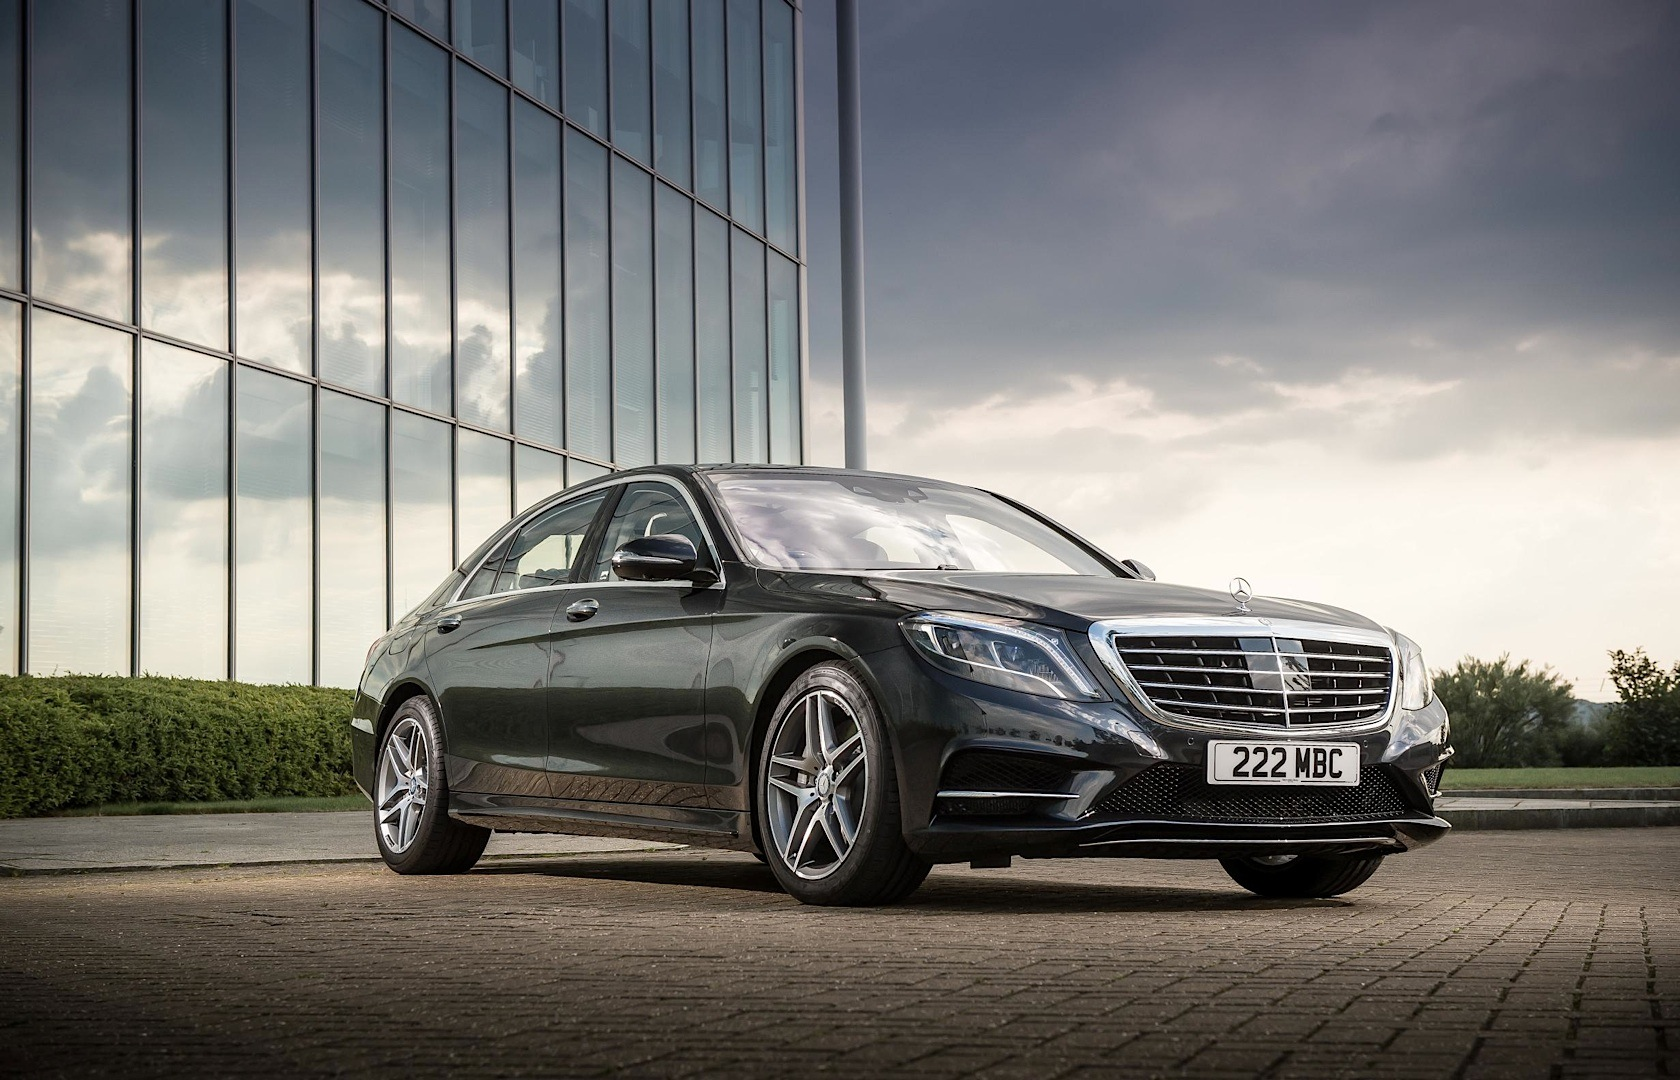 Mercedes benz voted uk 39 s coolest full line car brand for Mercedes benz brand